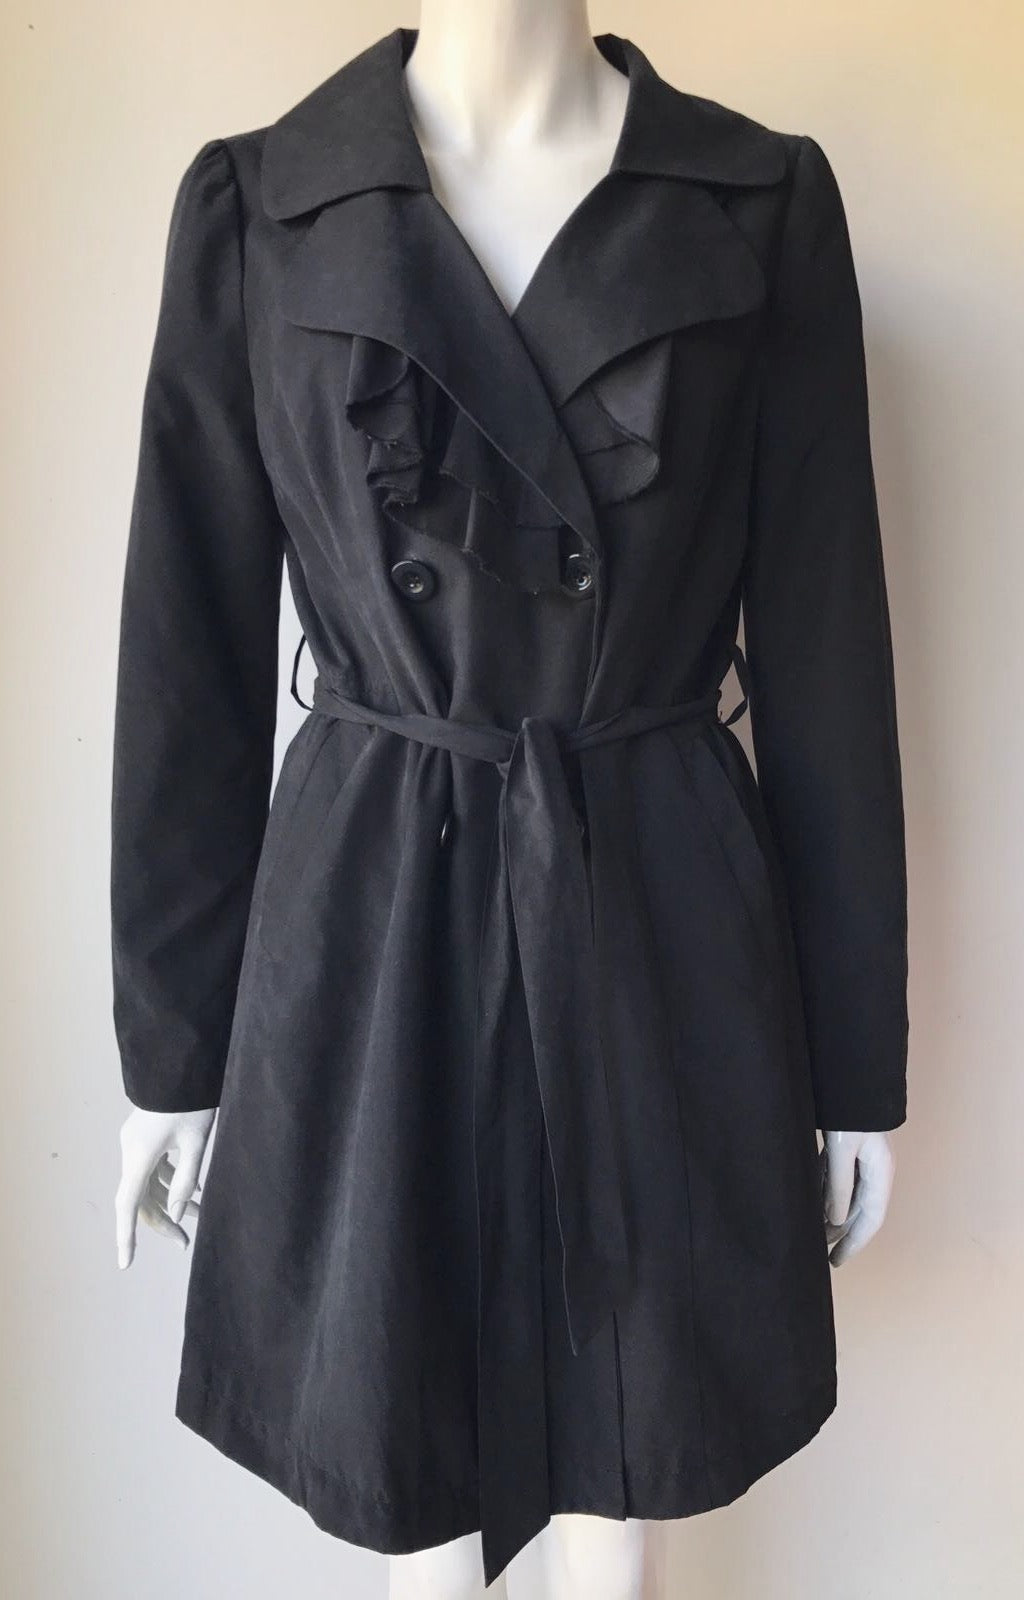 Ambition Black Ruffle Trench Coat Size M